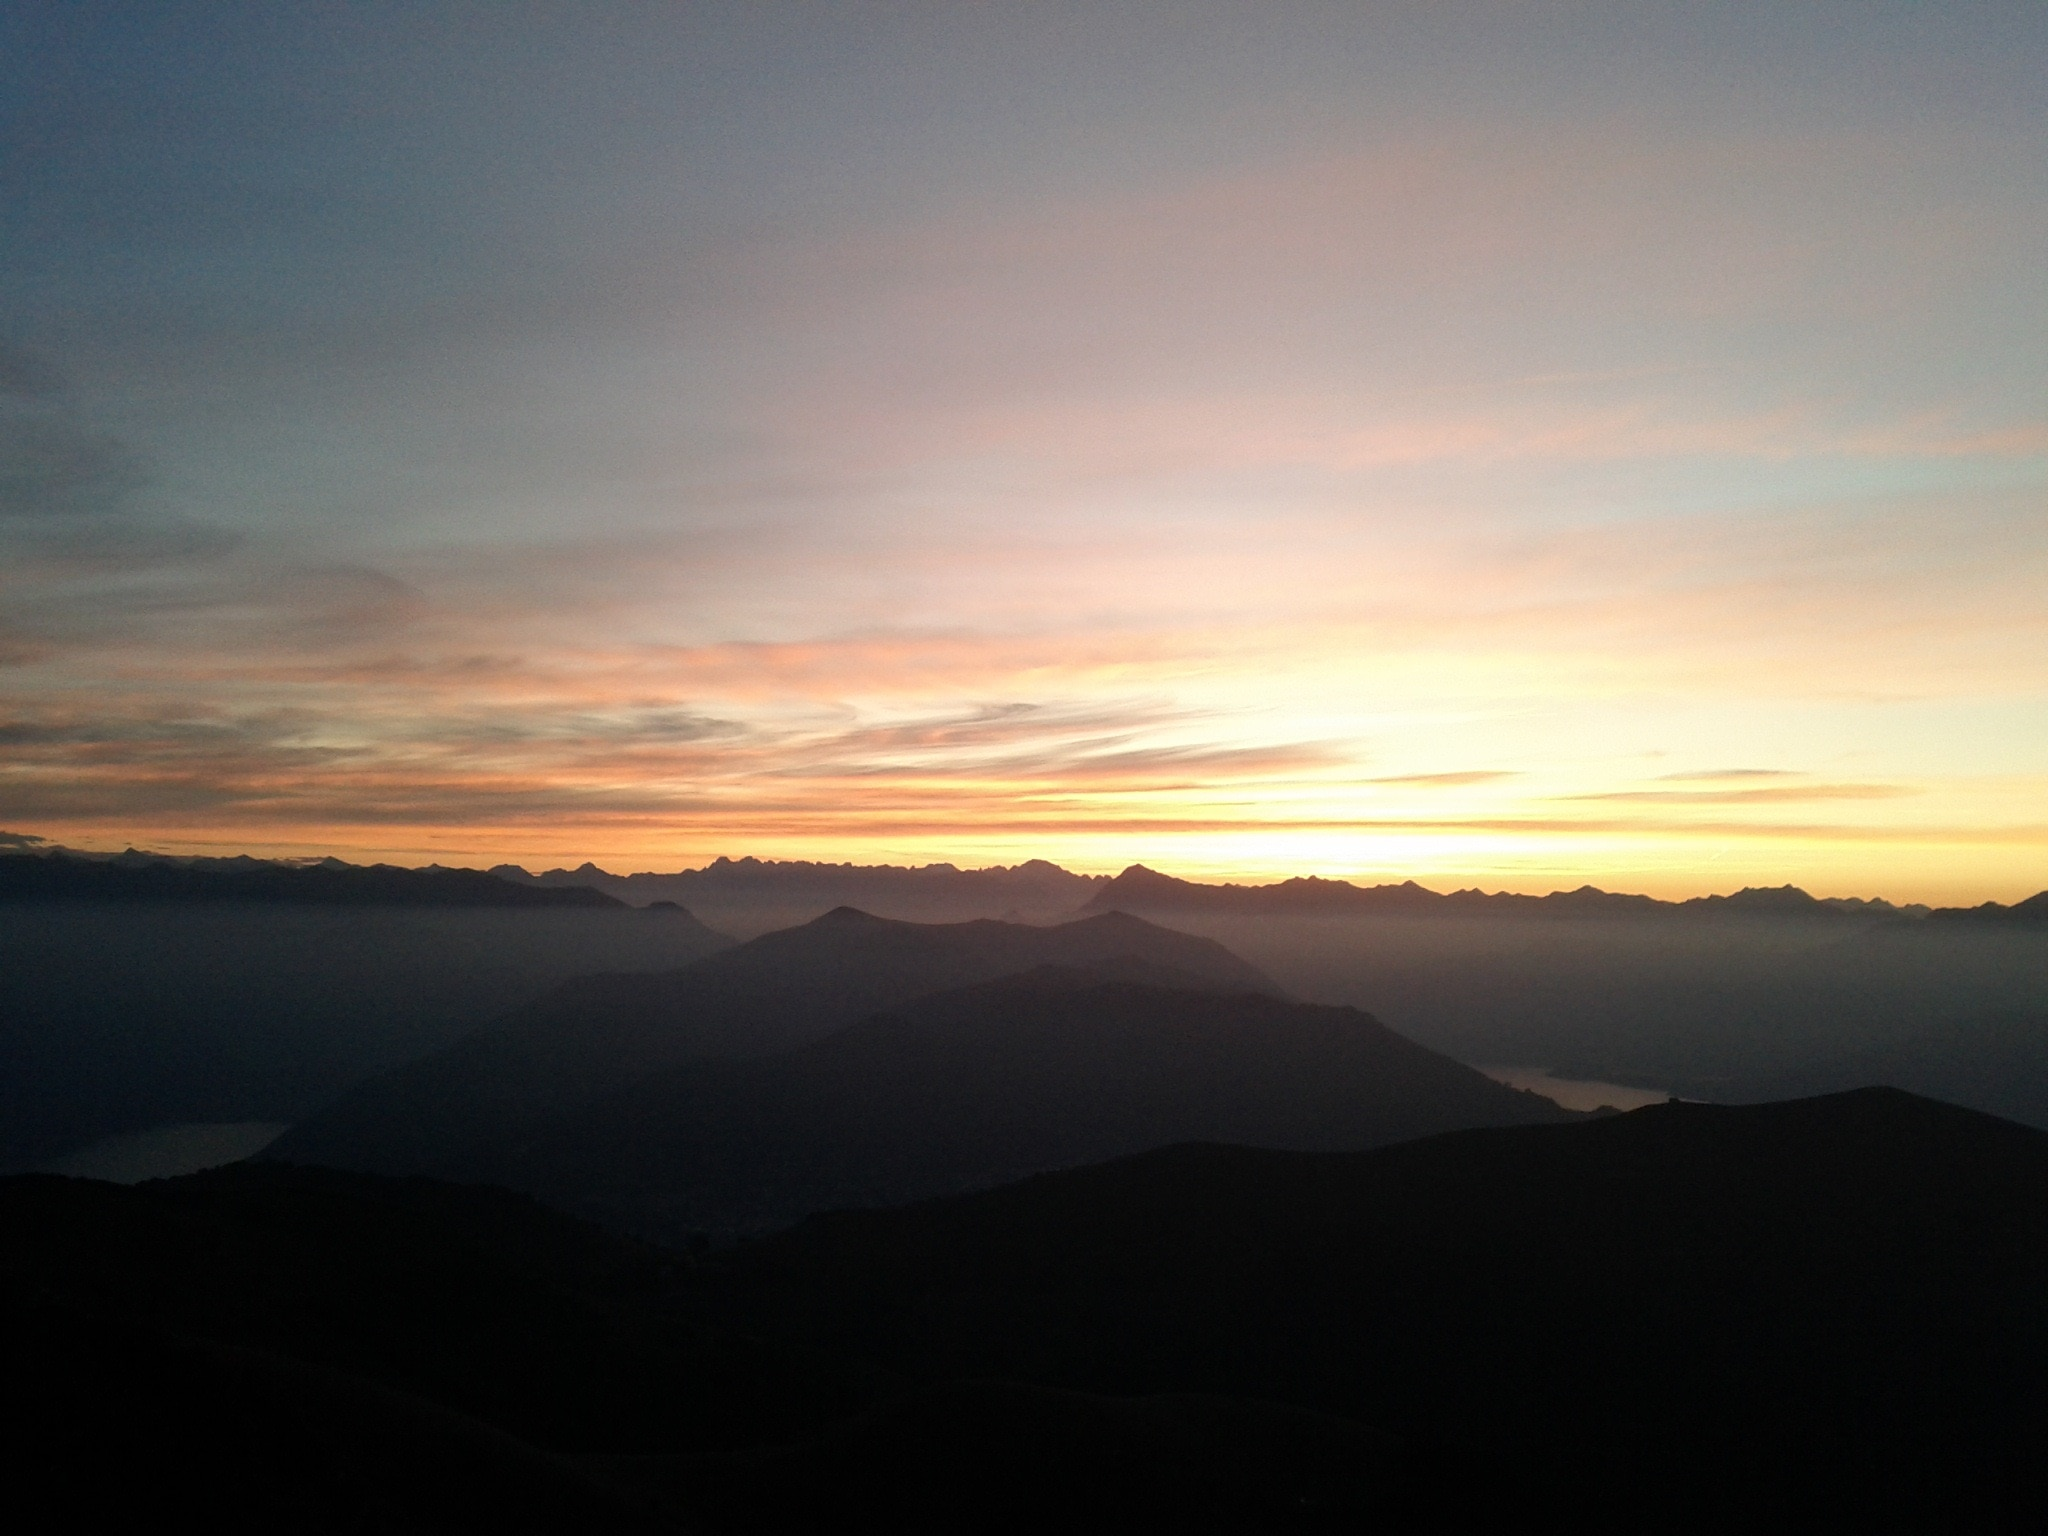 Just before sunrise on the top of Monte Generoso. I traversed over and beside many of these peaks in the last two weeks.